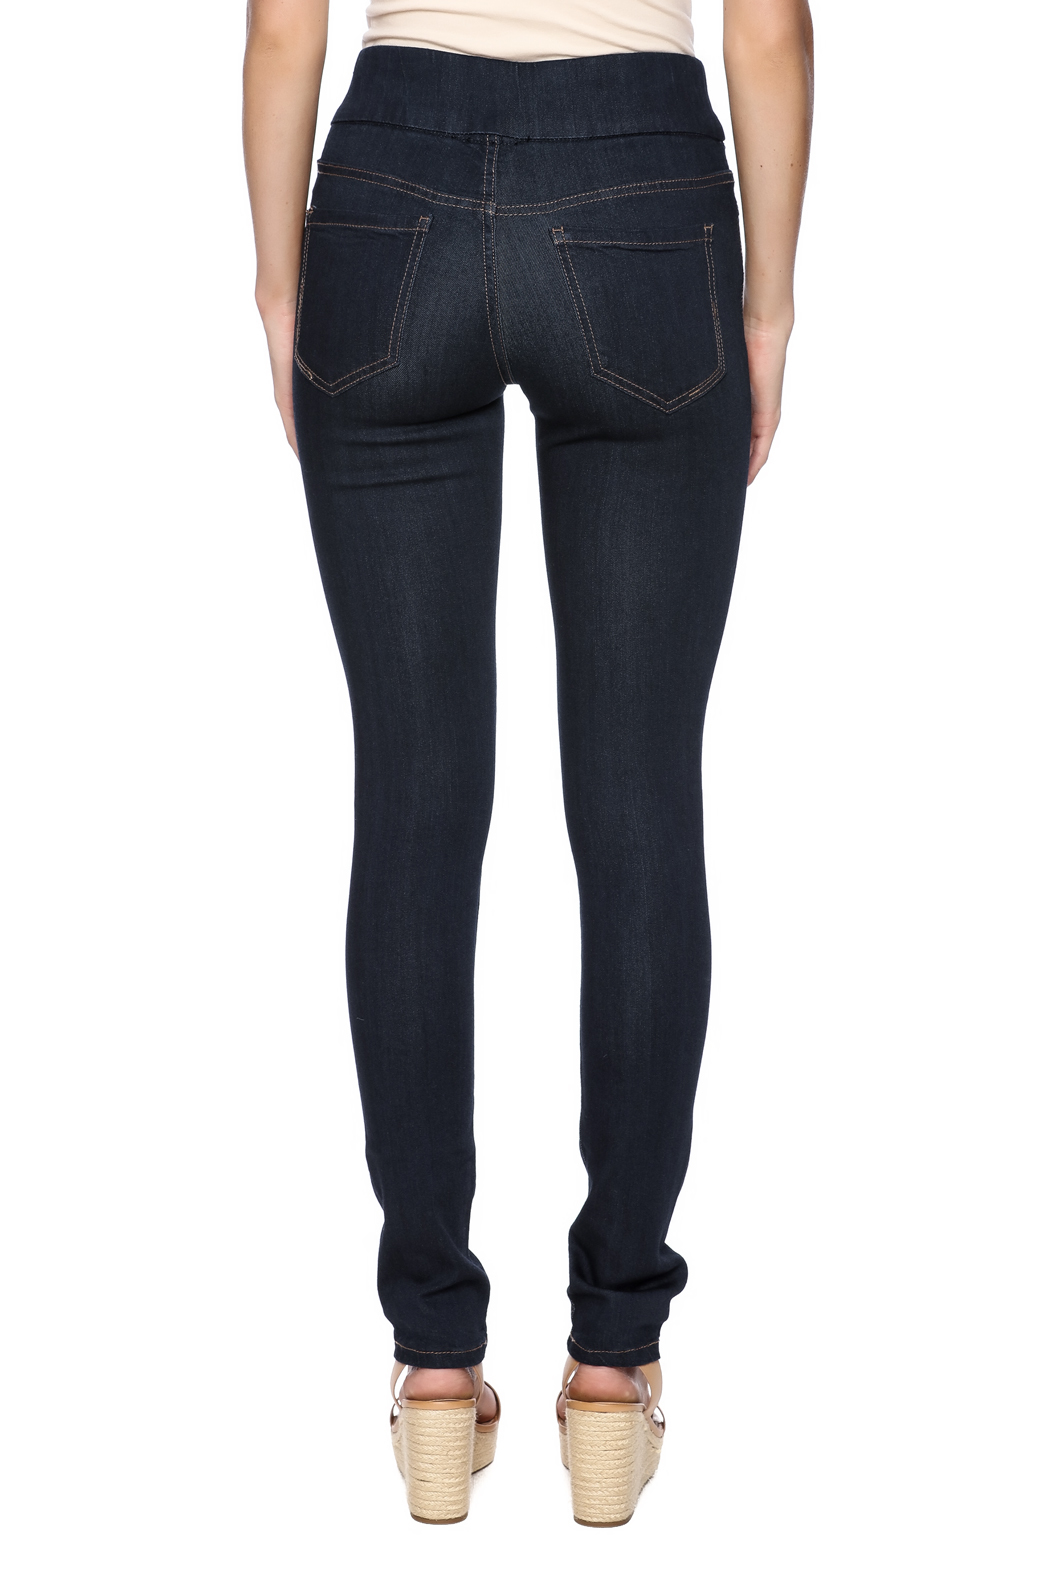 Liverpool Jeans Company Dark Indigo Sienna Jeggings - Back Cropped Image